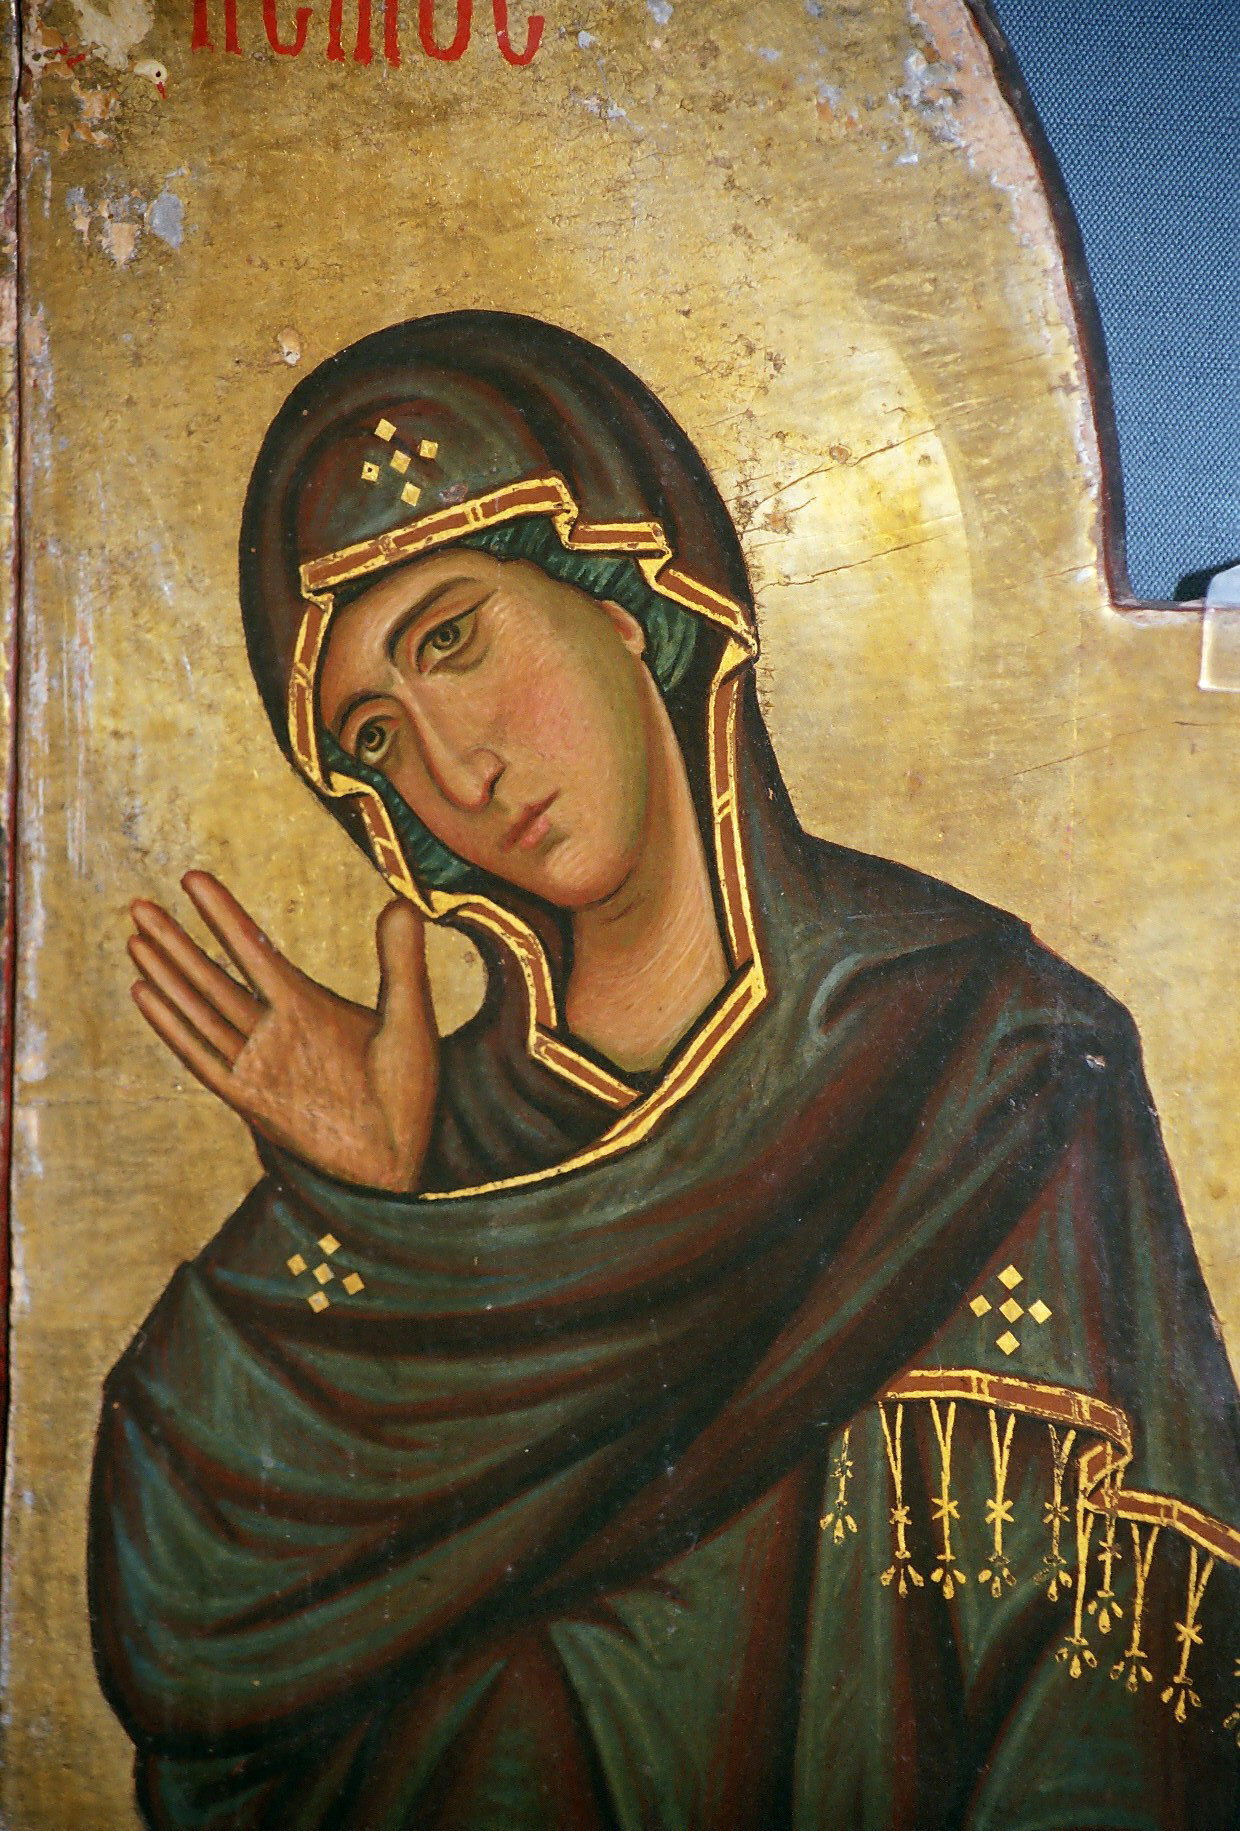 Populaire Byzantine icons of Sinai - Icons - Gallery - Web gallery of art CJ74